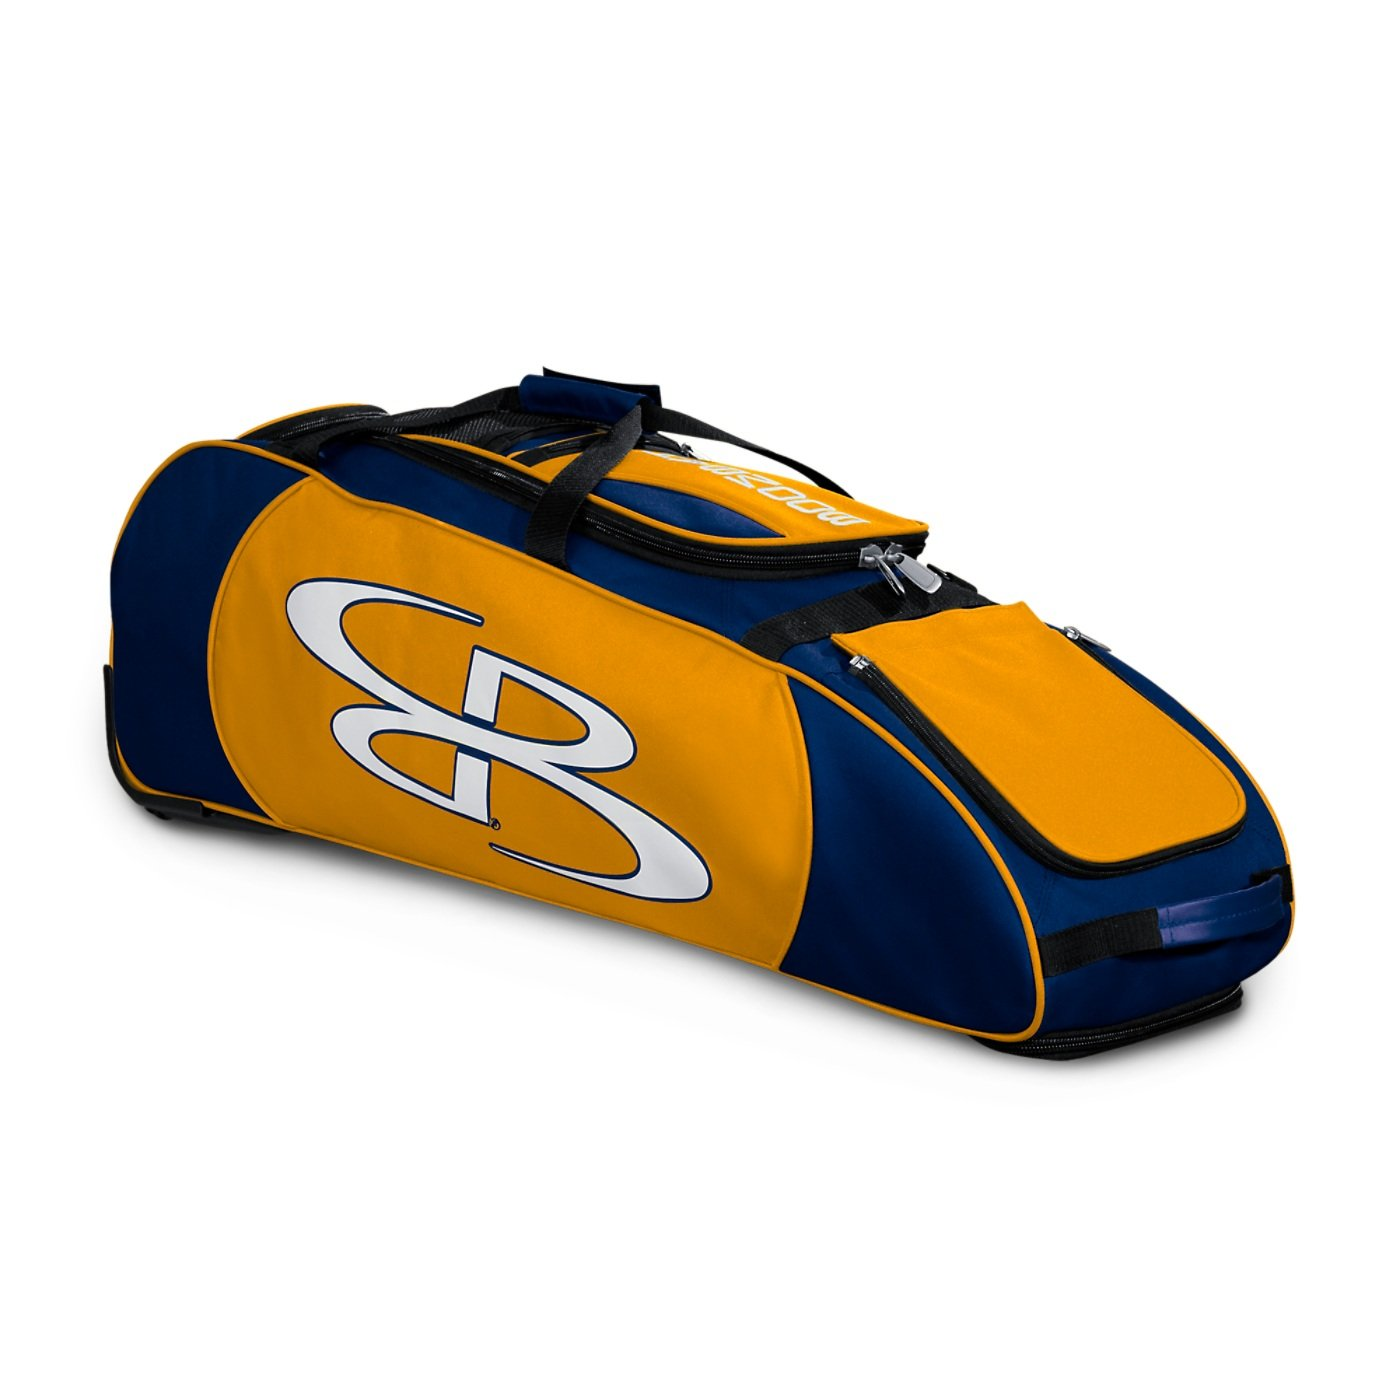 Holds 4 Bats and Much More Boombah Spartan Rolling Baseball//Softball Bat Bag 38 x 12-1//2 x 12